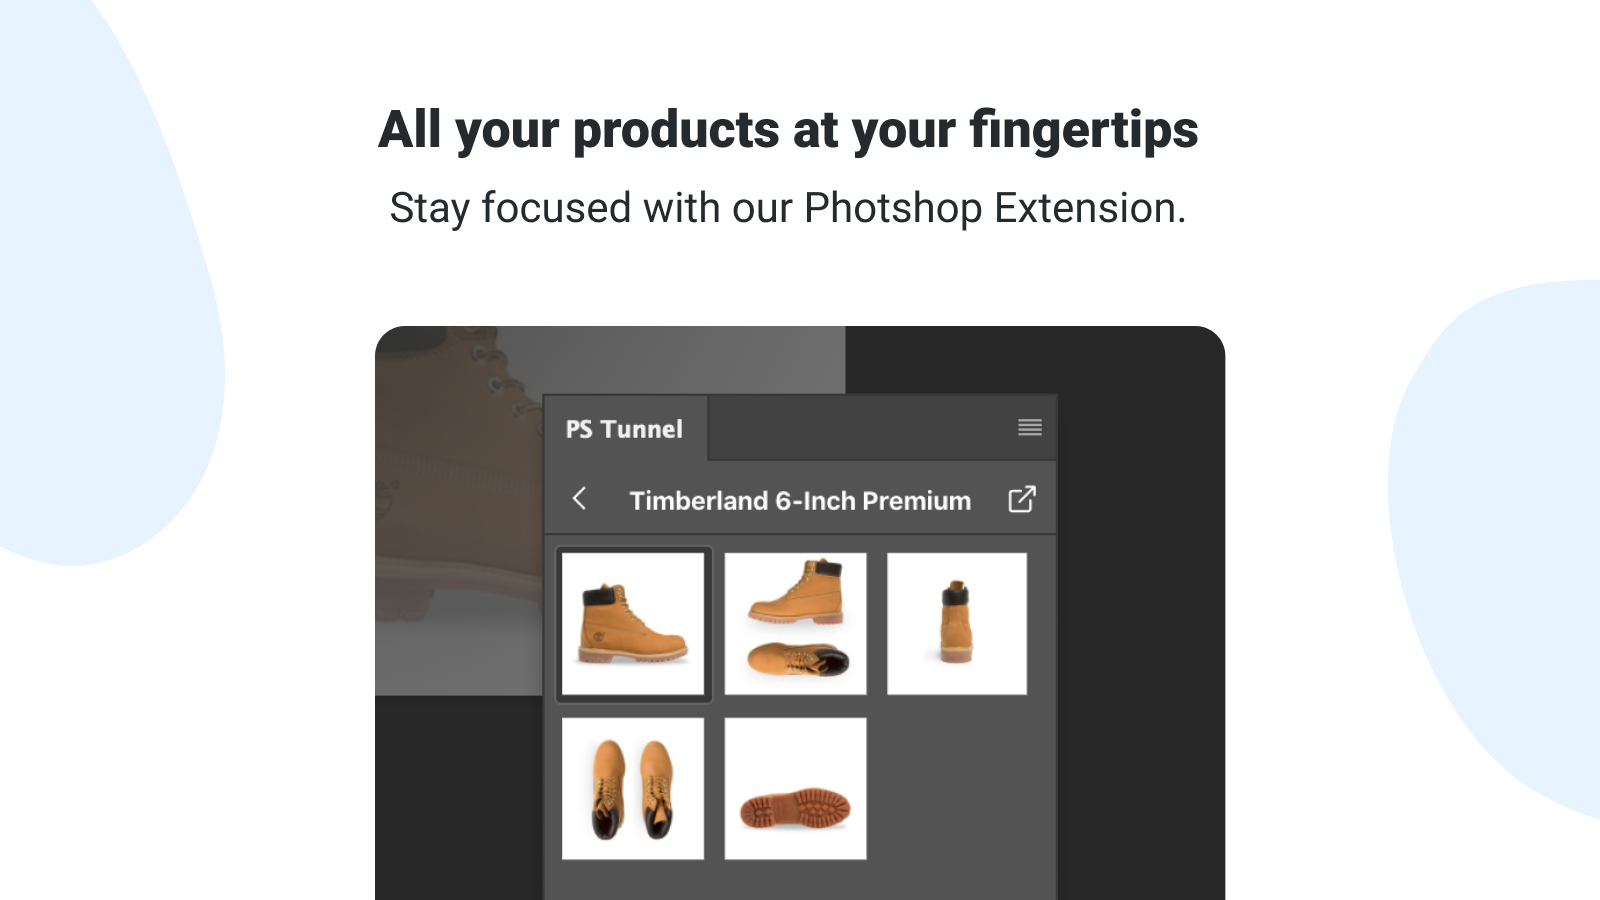 All your products at your fingertips